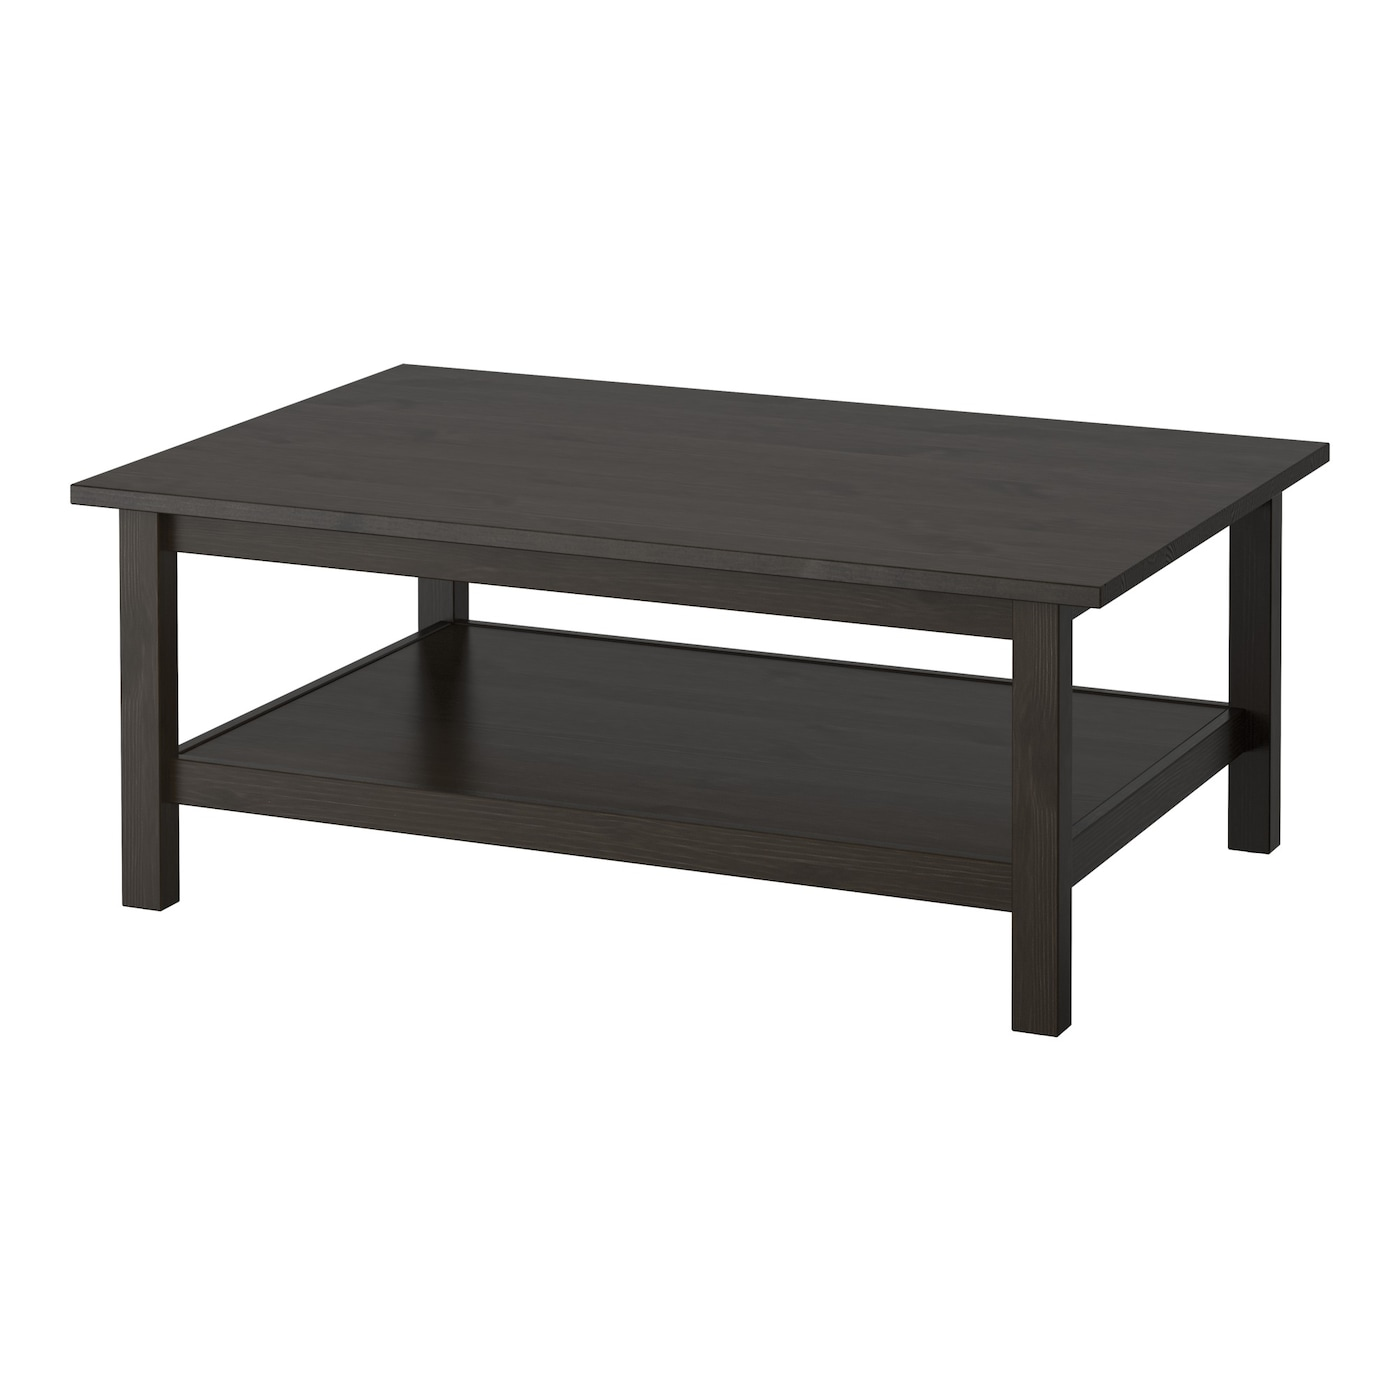 Ikea Hemnes Coffee Table Solid Wood Has A Natural Feel